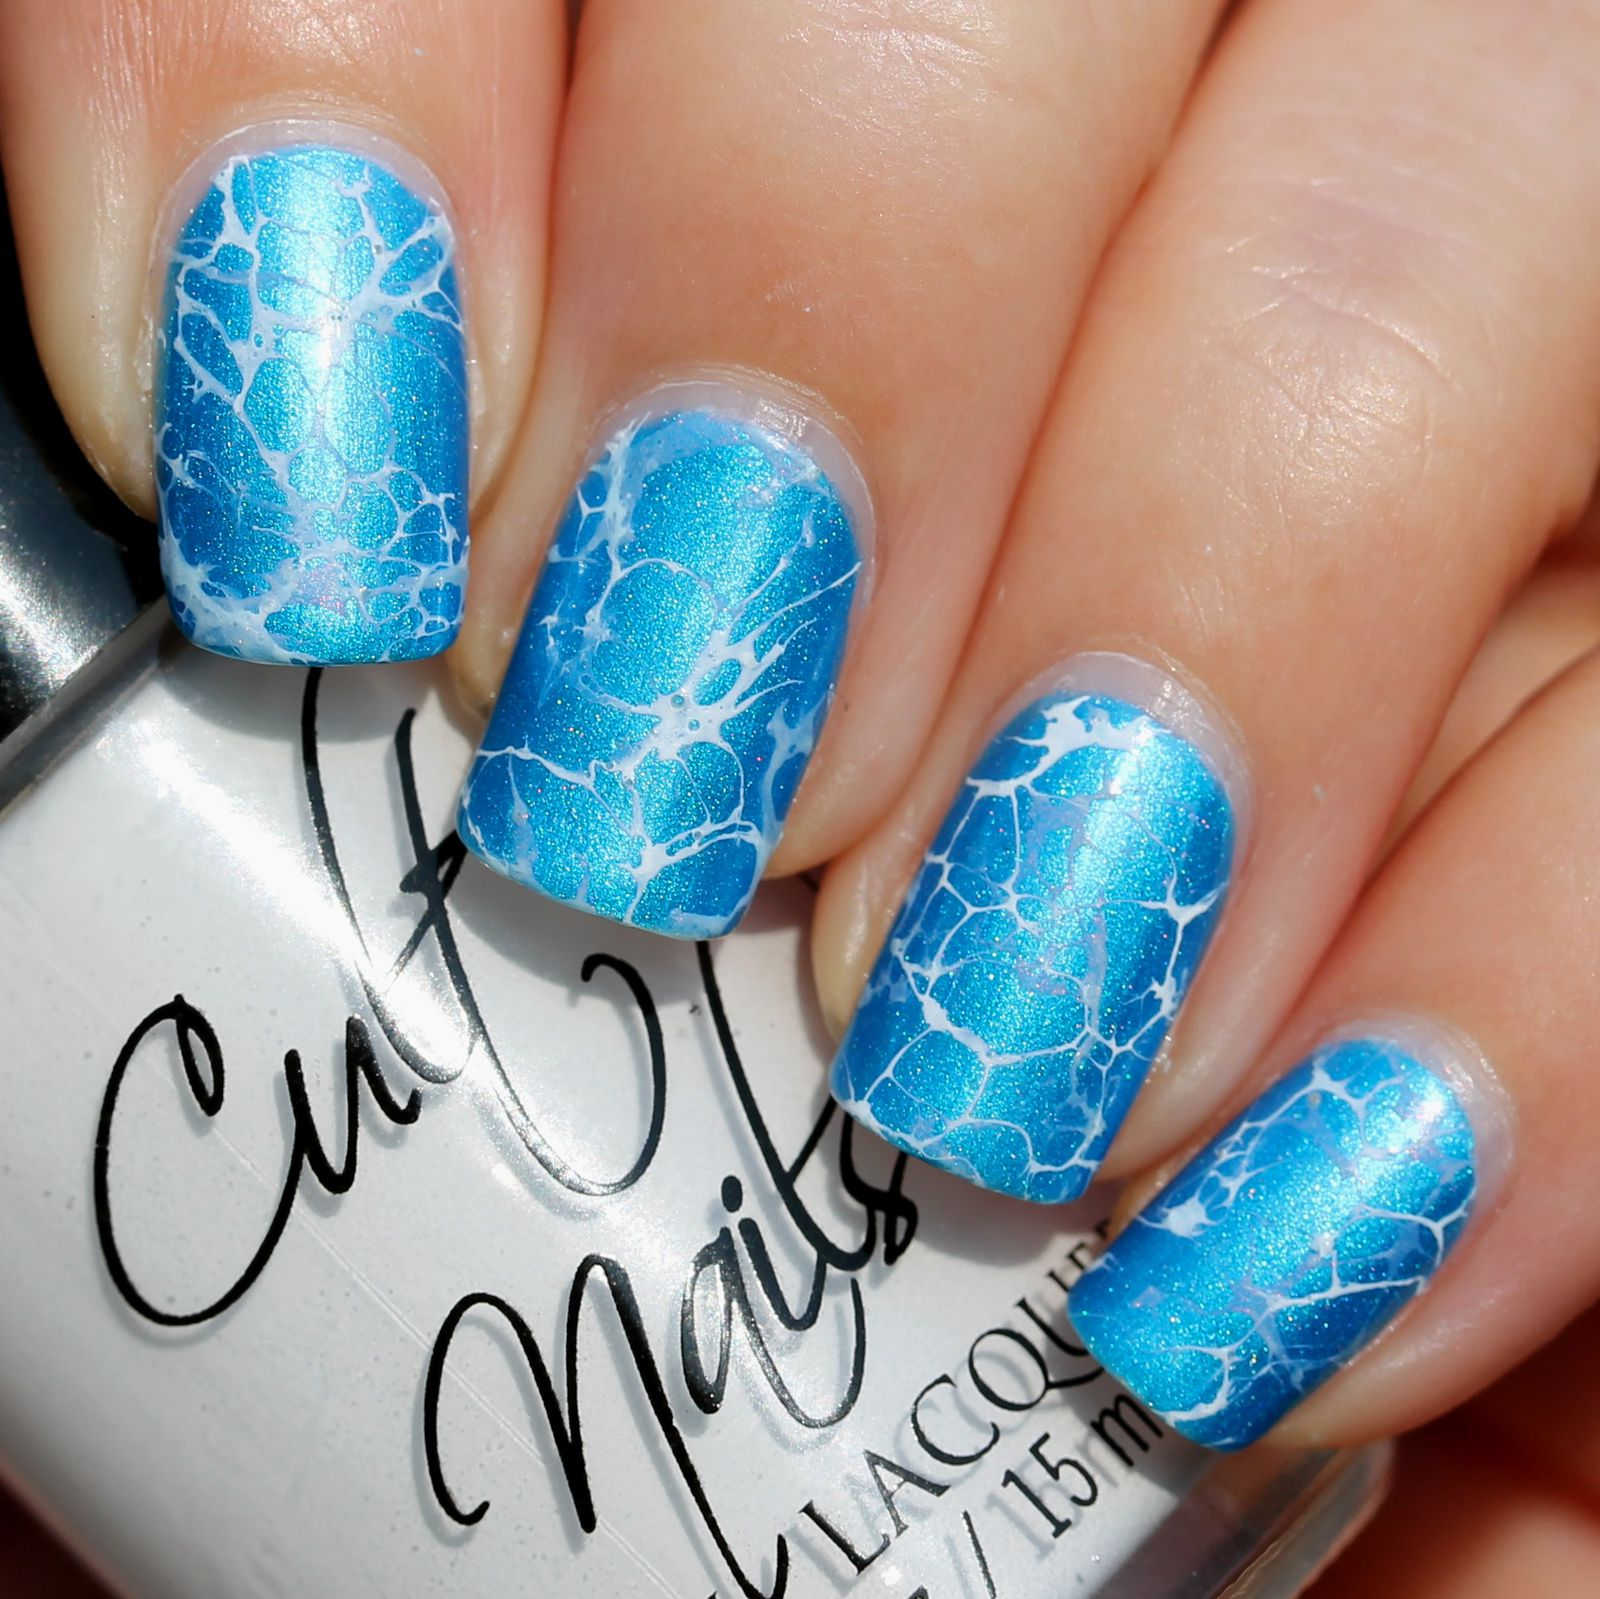 Duri Rejuvacote / Carpe Noctem Cosmetics King Triton / Cult nails Tempest & China Glaze Dashboard Dreamer Spotted Water Marble / Sally Hansen Miracle Gel Top Coat